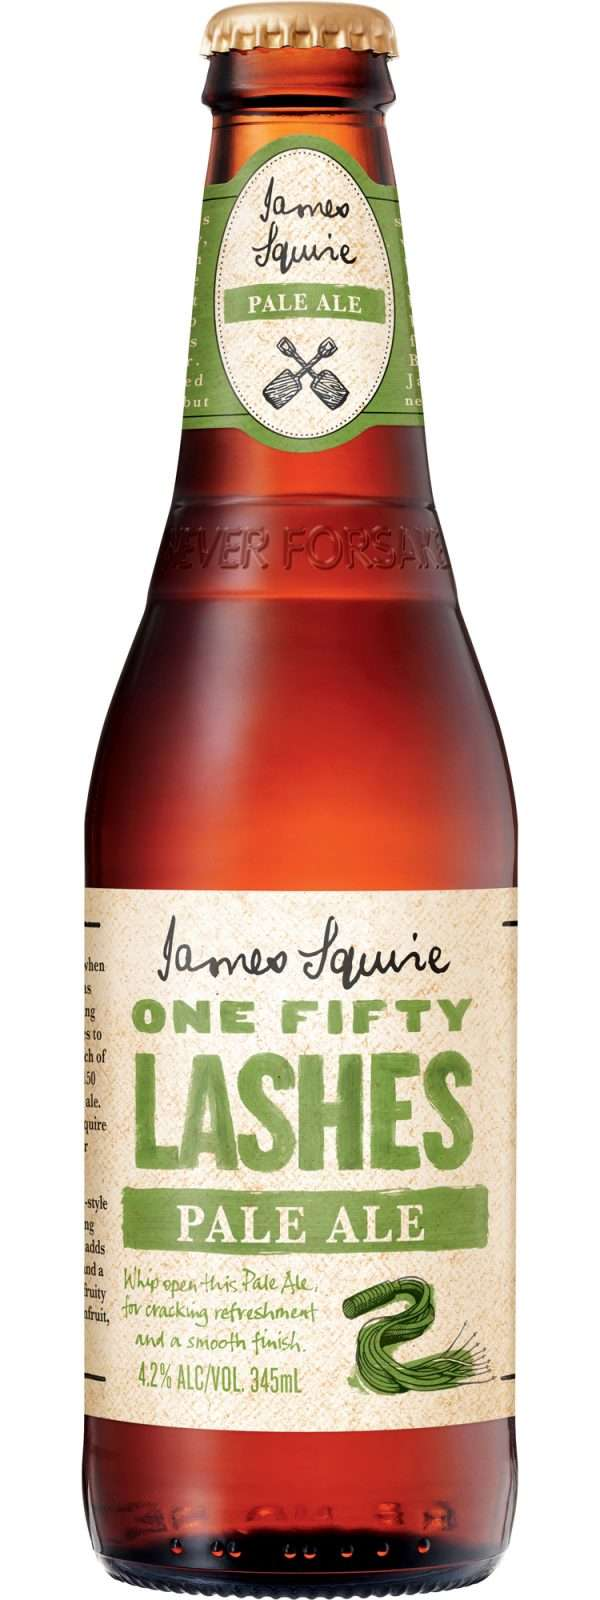 James Squire One Fifty Lashes Pale Ale